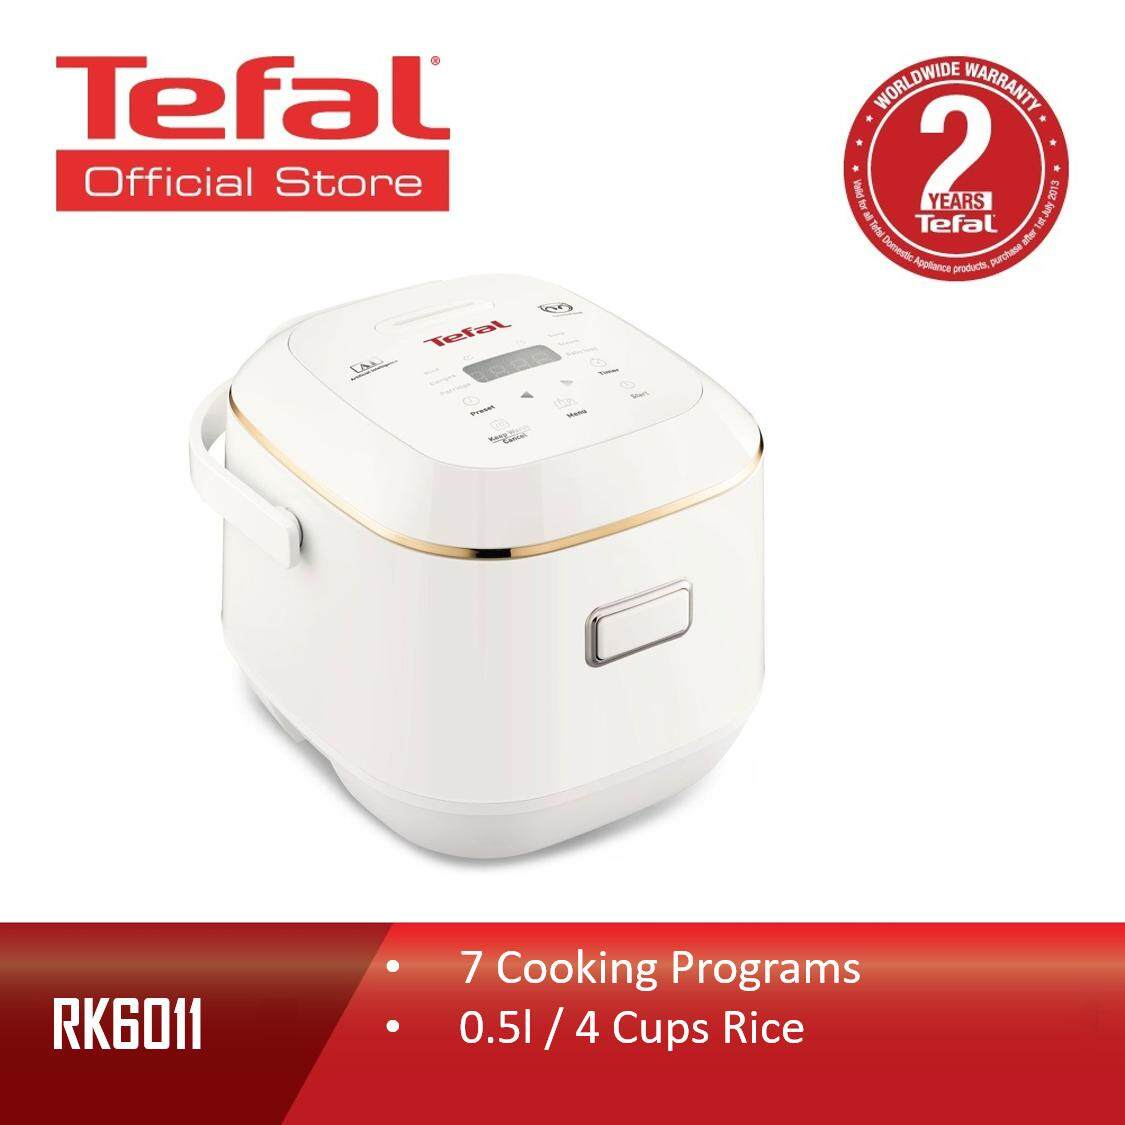 Tefal Fuzzy Logic 6 Layers Mini Spherical Pot 7 Cooking Programs Rice Cooker 0.5L RK6011